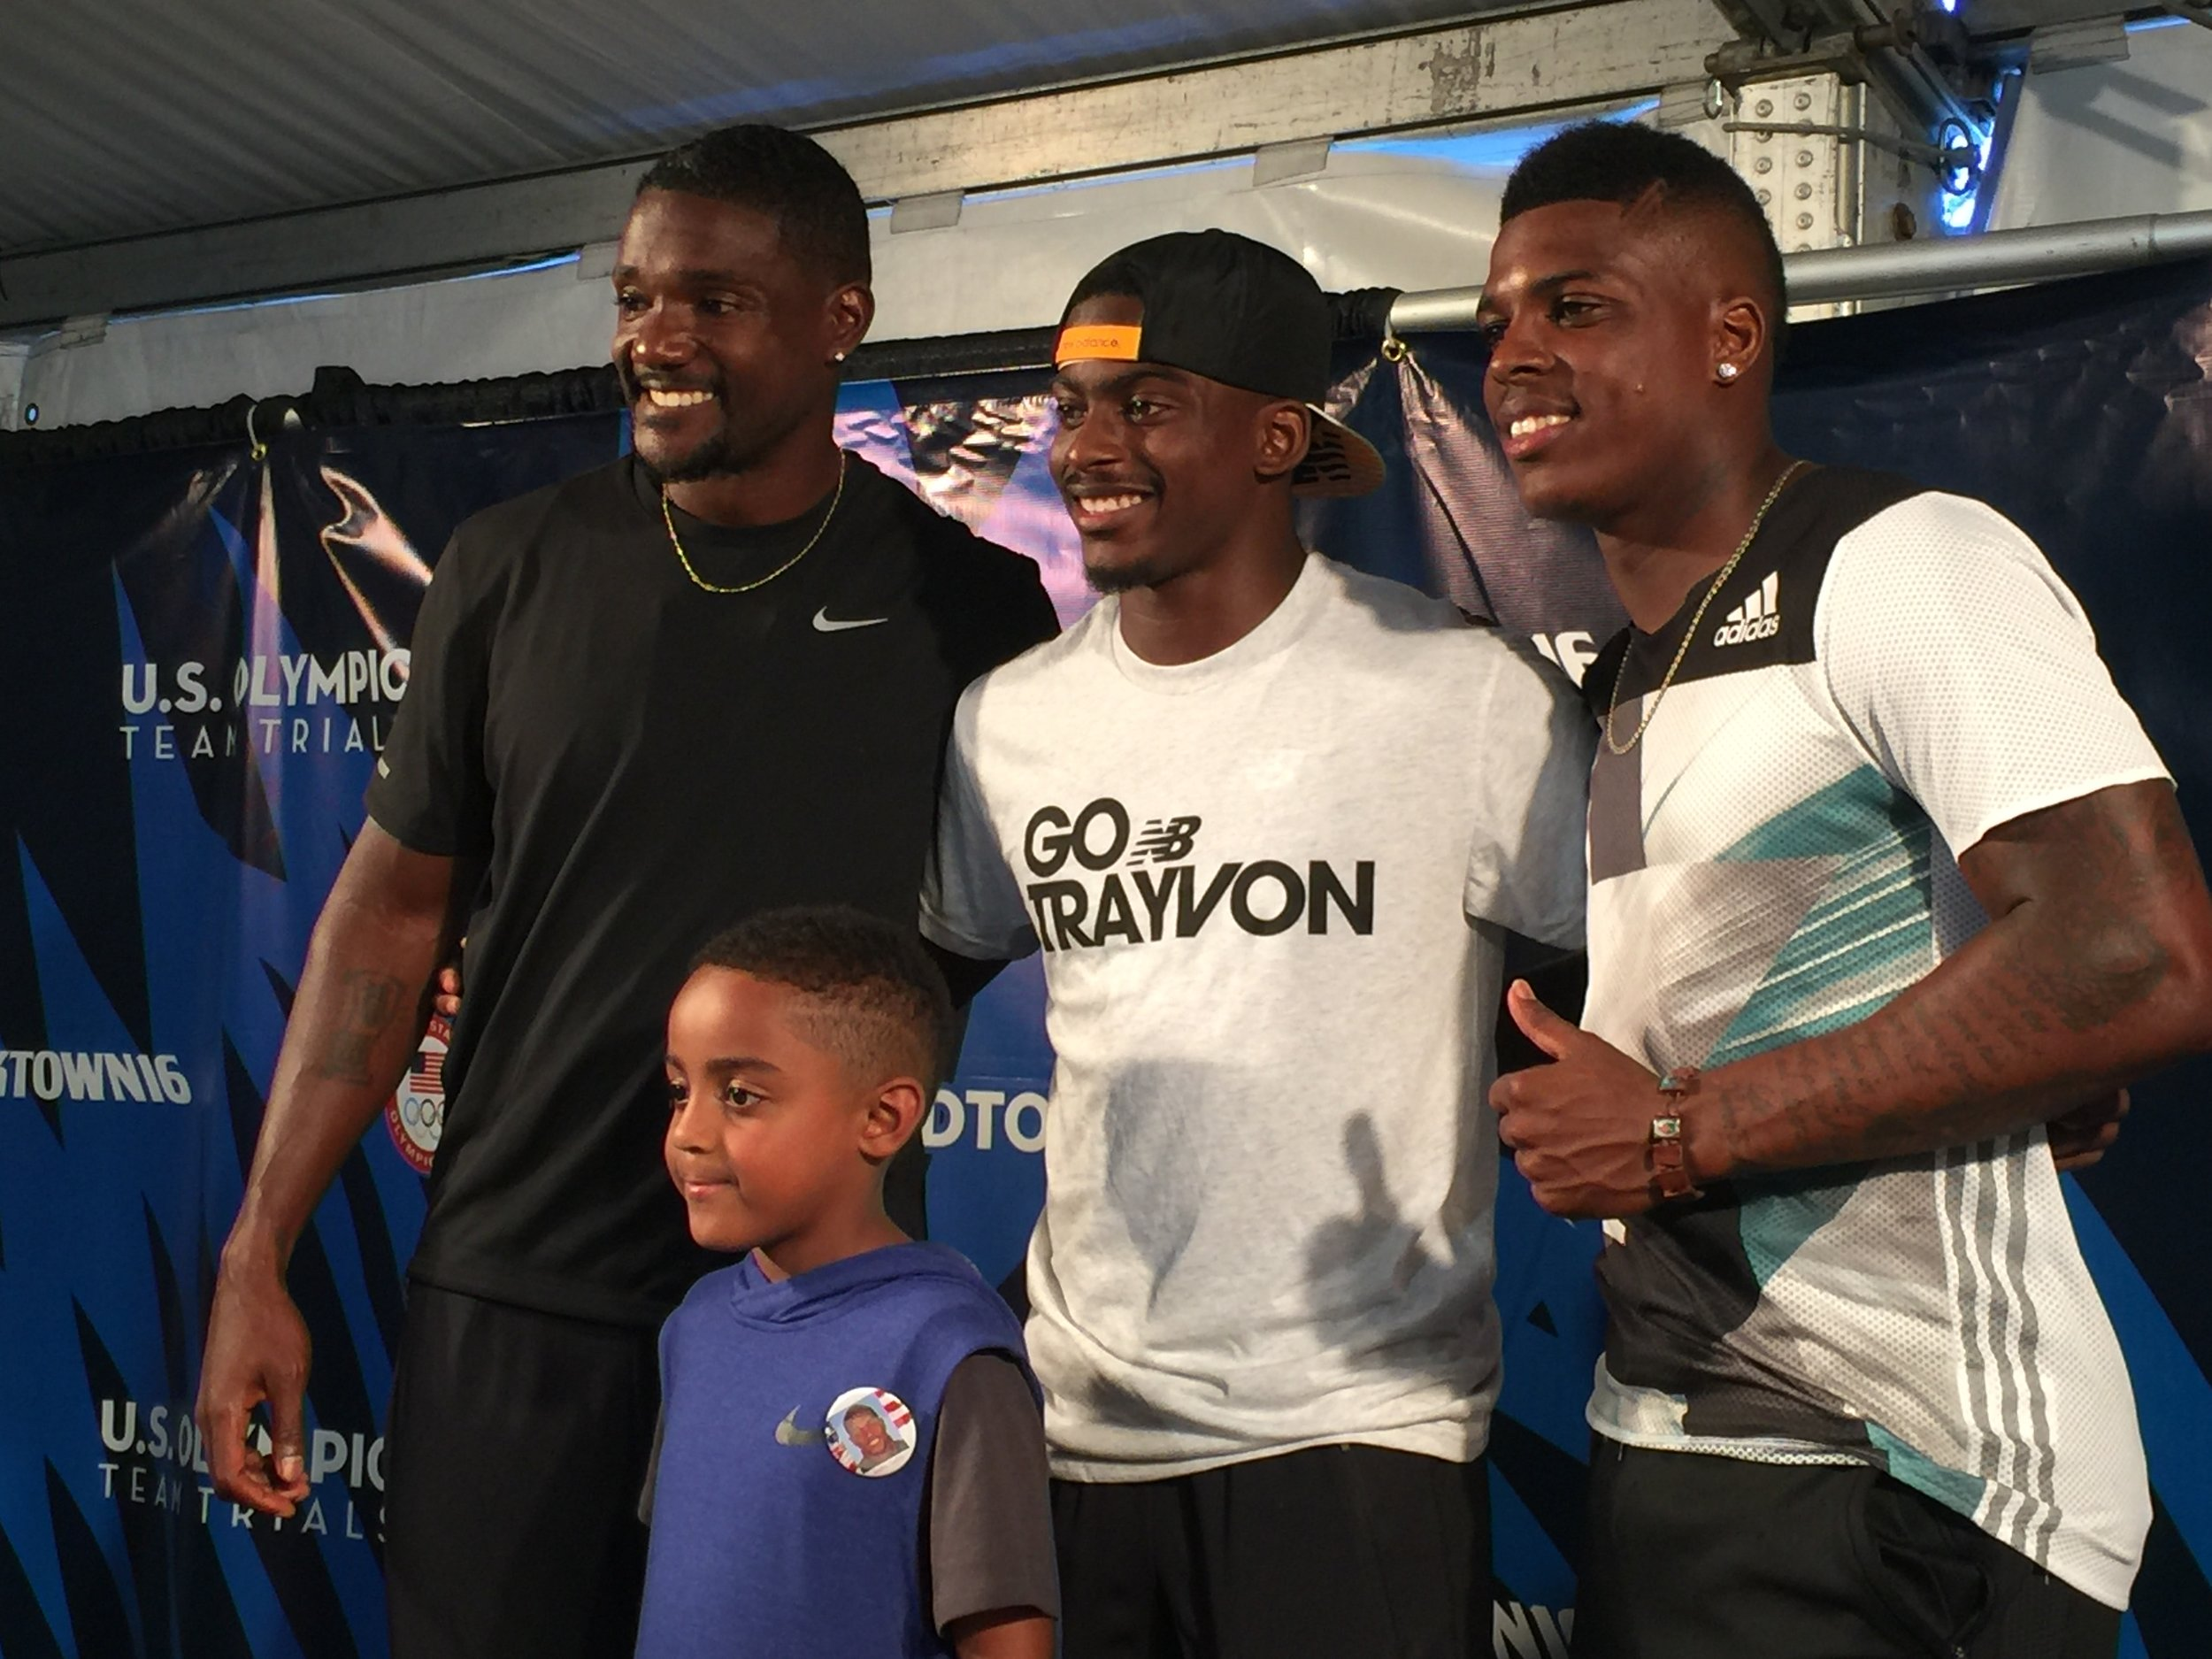 Justin and Jace Gatlin, Trayvon Bromell and Marvin Bracy after the race